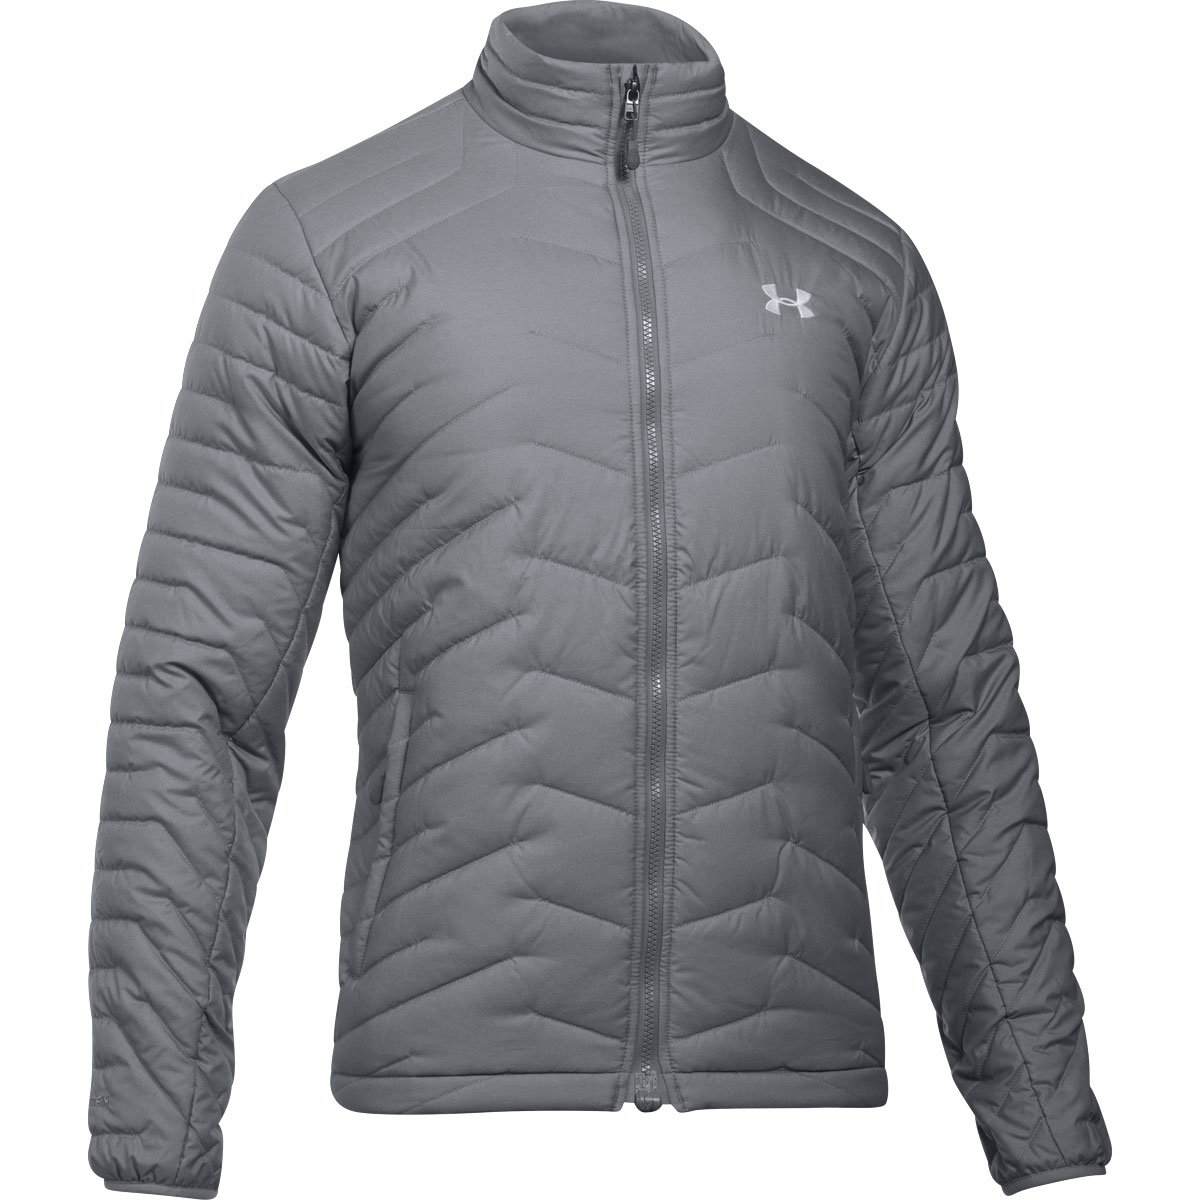 Under Armour Outerwear Men's Cold Gear Reactor Jacket, True Gray Heather/White, Large by Under Armour